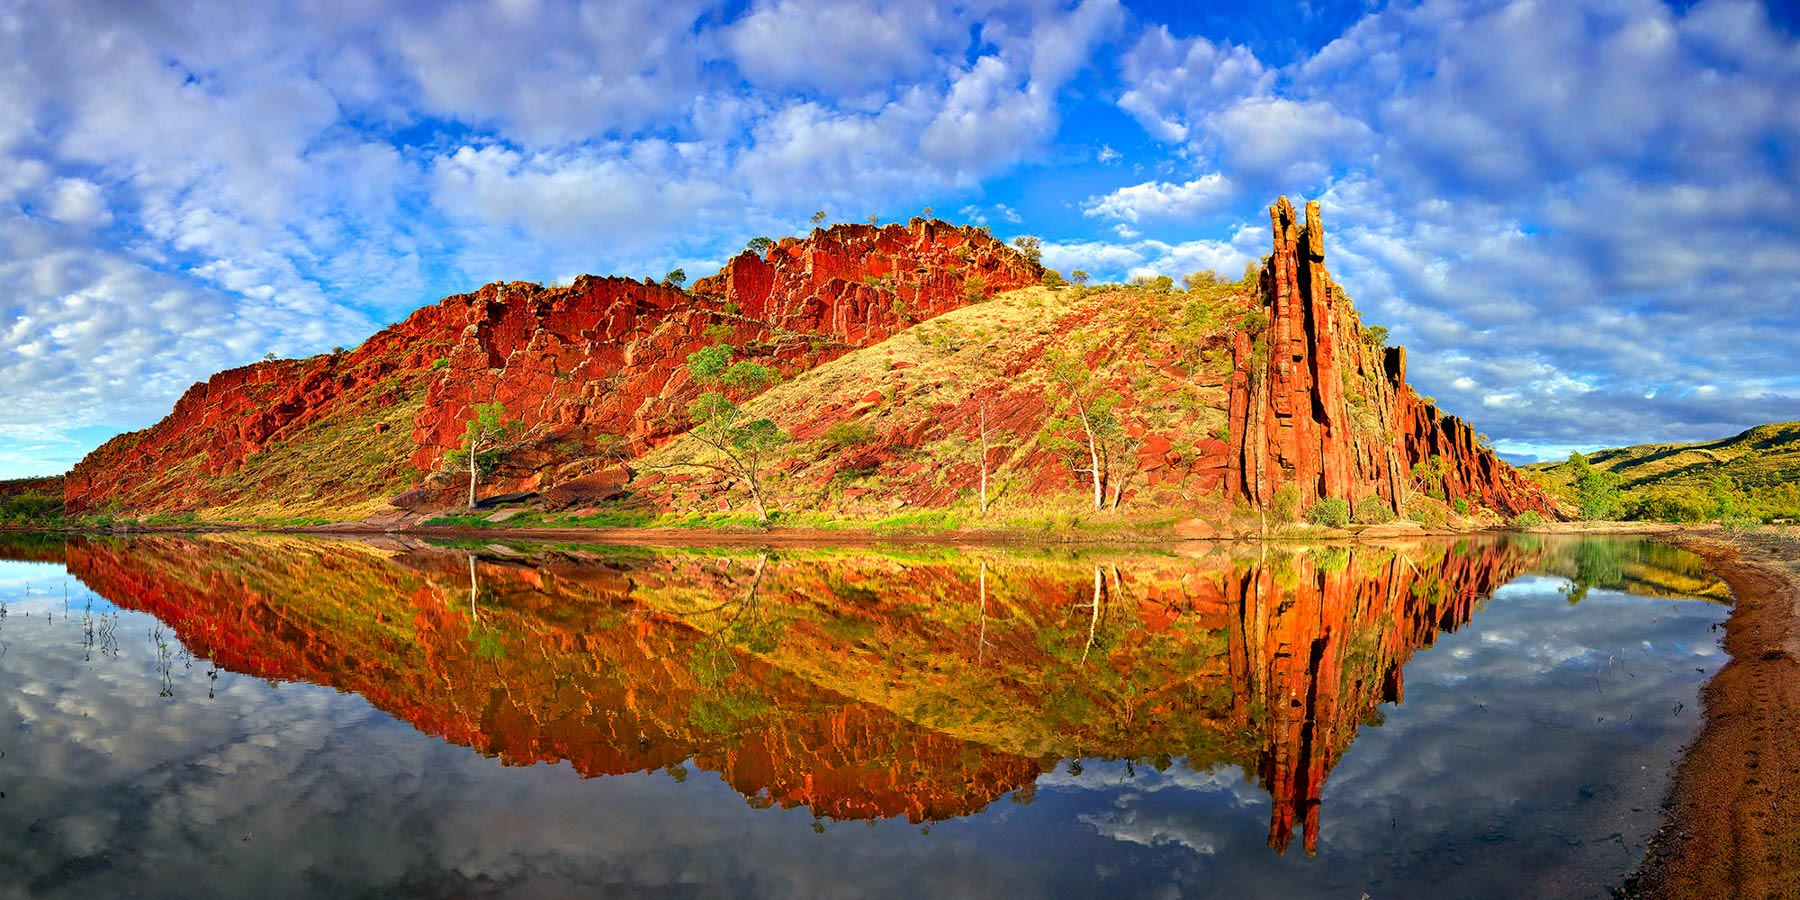 Perfect reflections of the Organ Pipes in Glen Helen Gorge, NT, Australia.